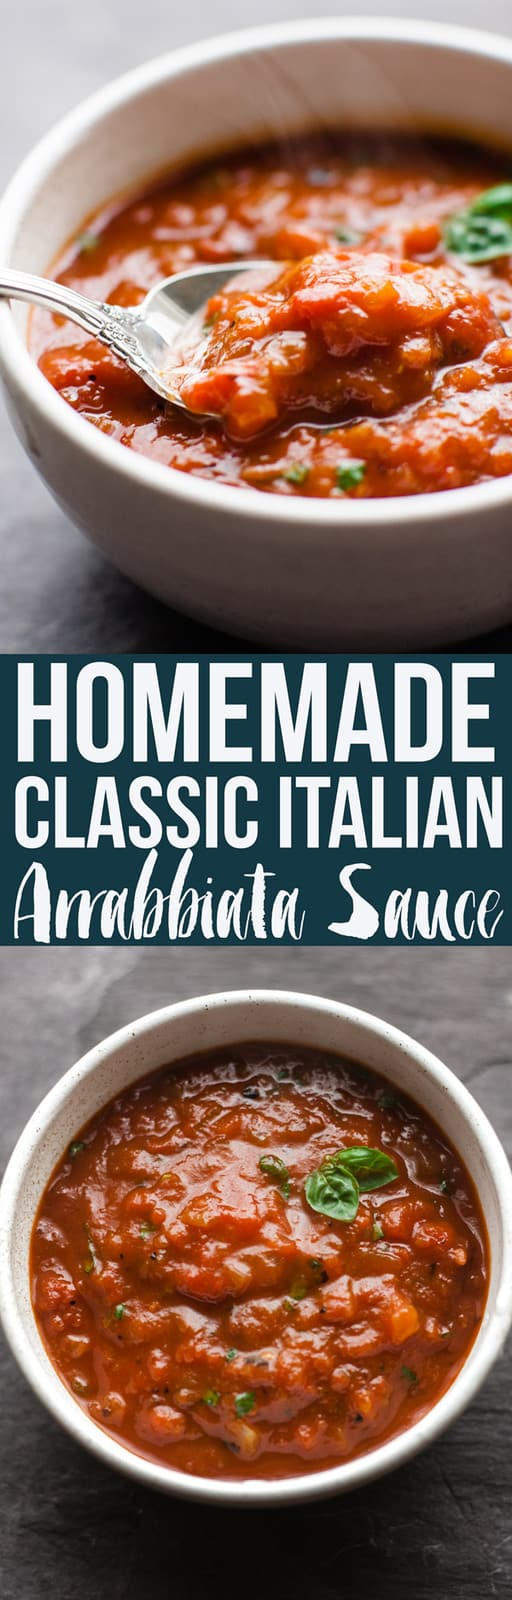 This classic arrabbiata sauce is a 30 minute Italian sauce that's perfect for any tomato based pasta dish. It's a fuss free dinner ready in minutes. Satisfyingly spicy from dried chilli flakes balanced with a hint of sweetness from basil and balsamic vinegar.